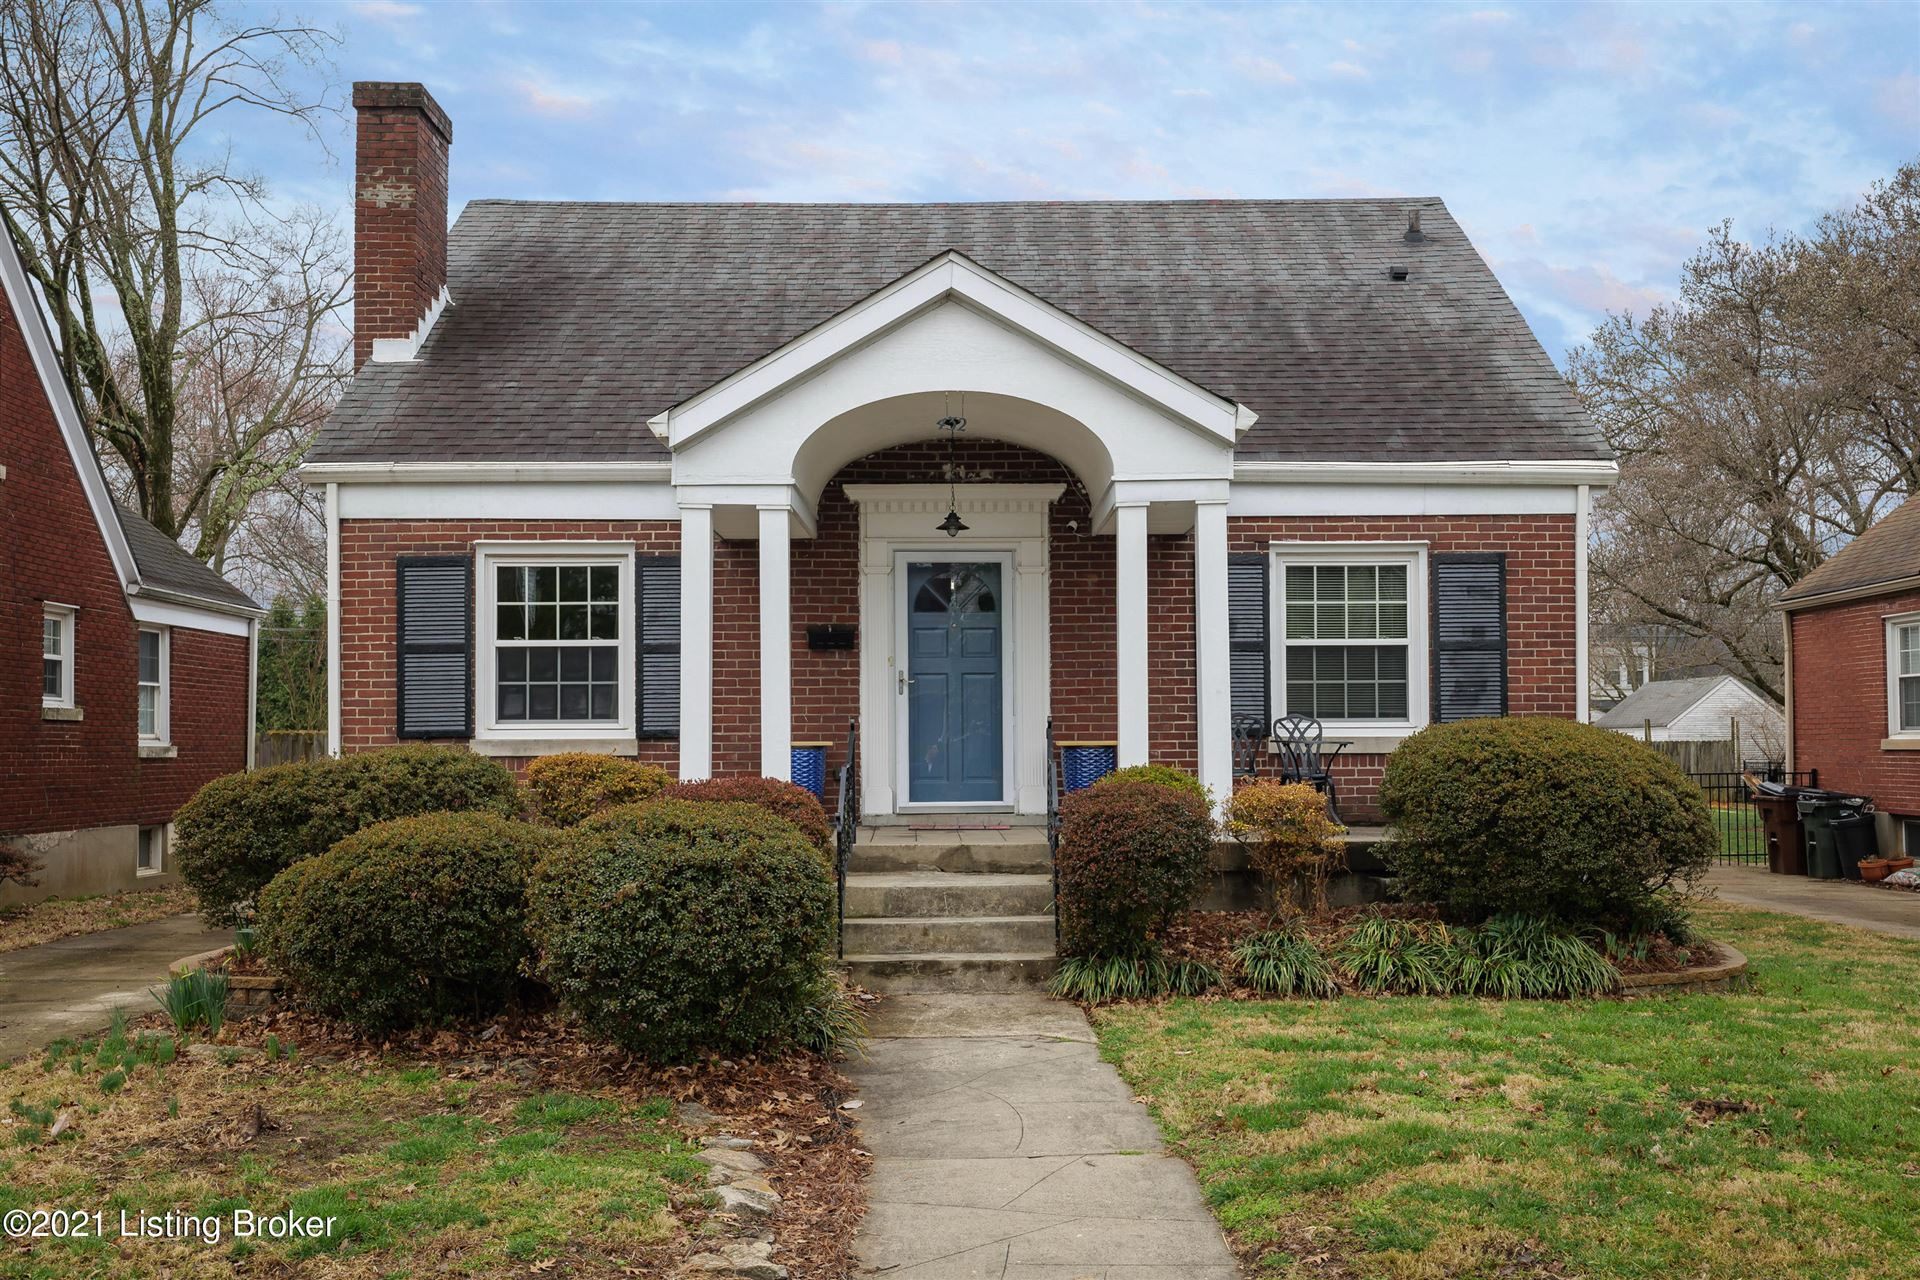 Photo for 432 Bauer Ave, Louisville, KY 40207 (MLS # 1582749)